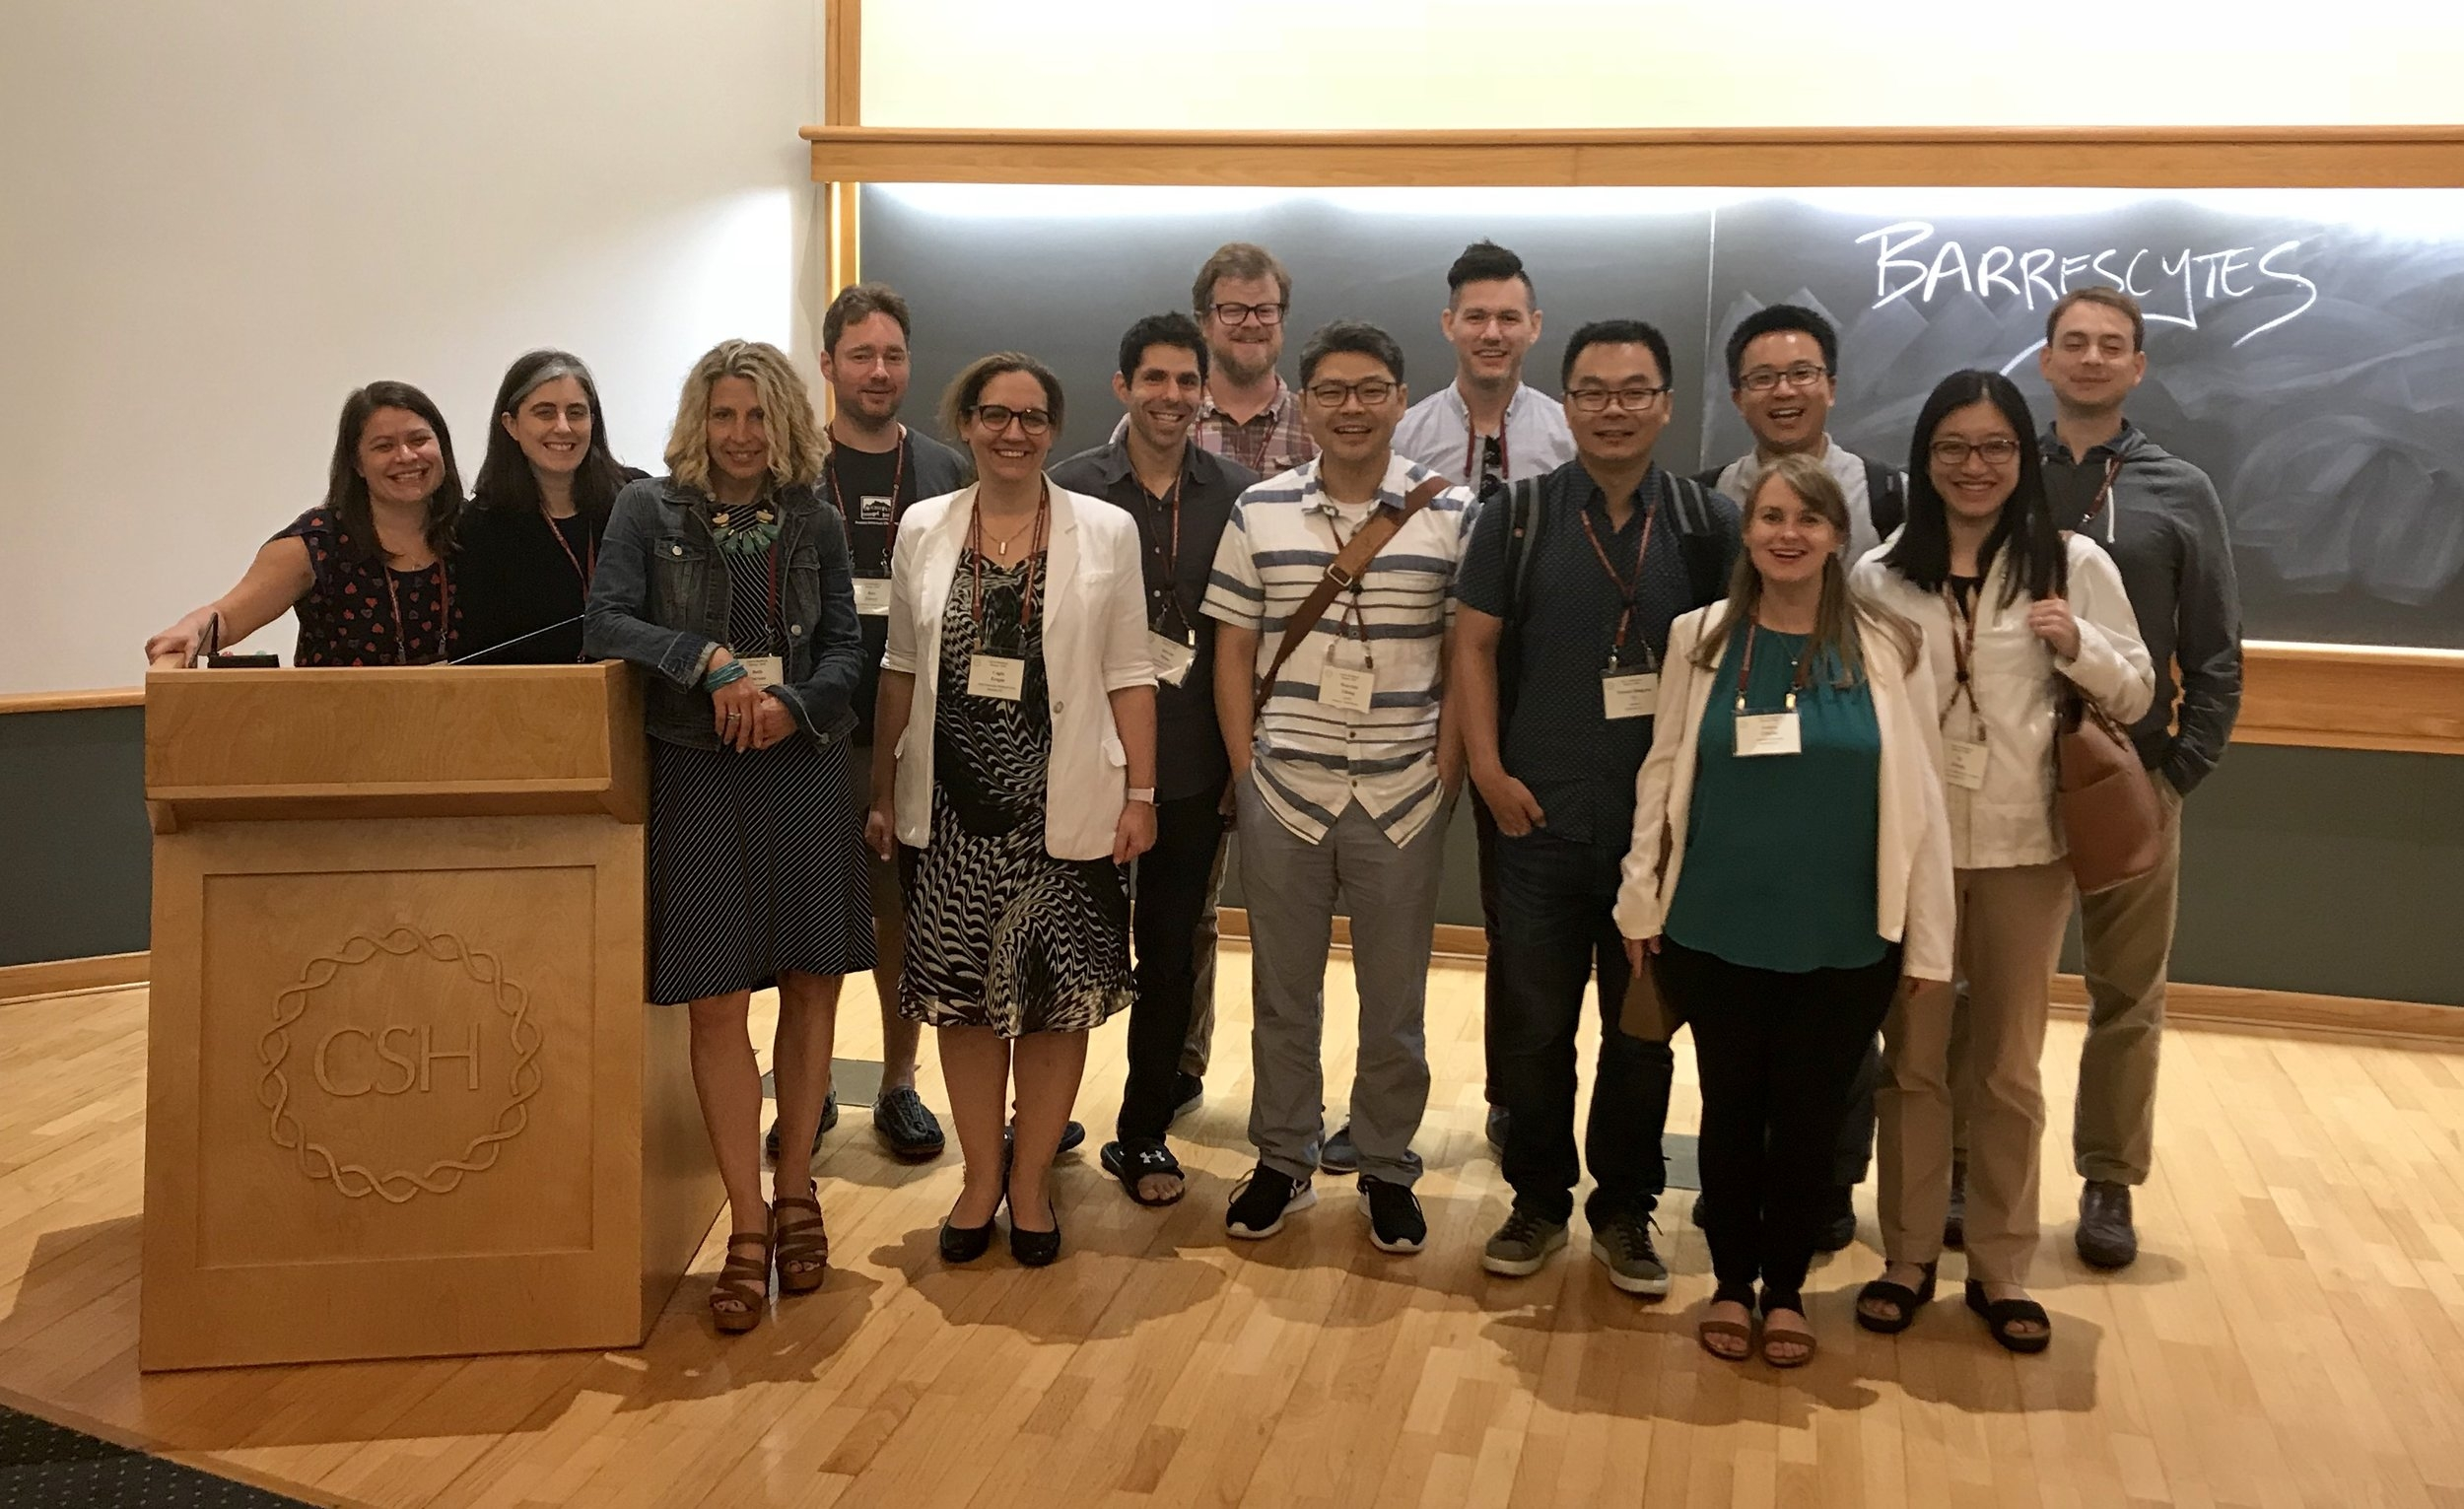 2018 CSHL GLIA meeting with alumni from Ben Barres' lab